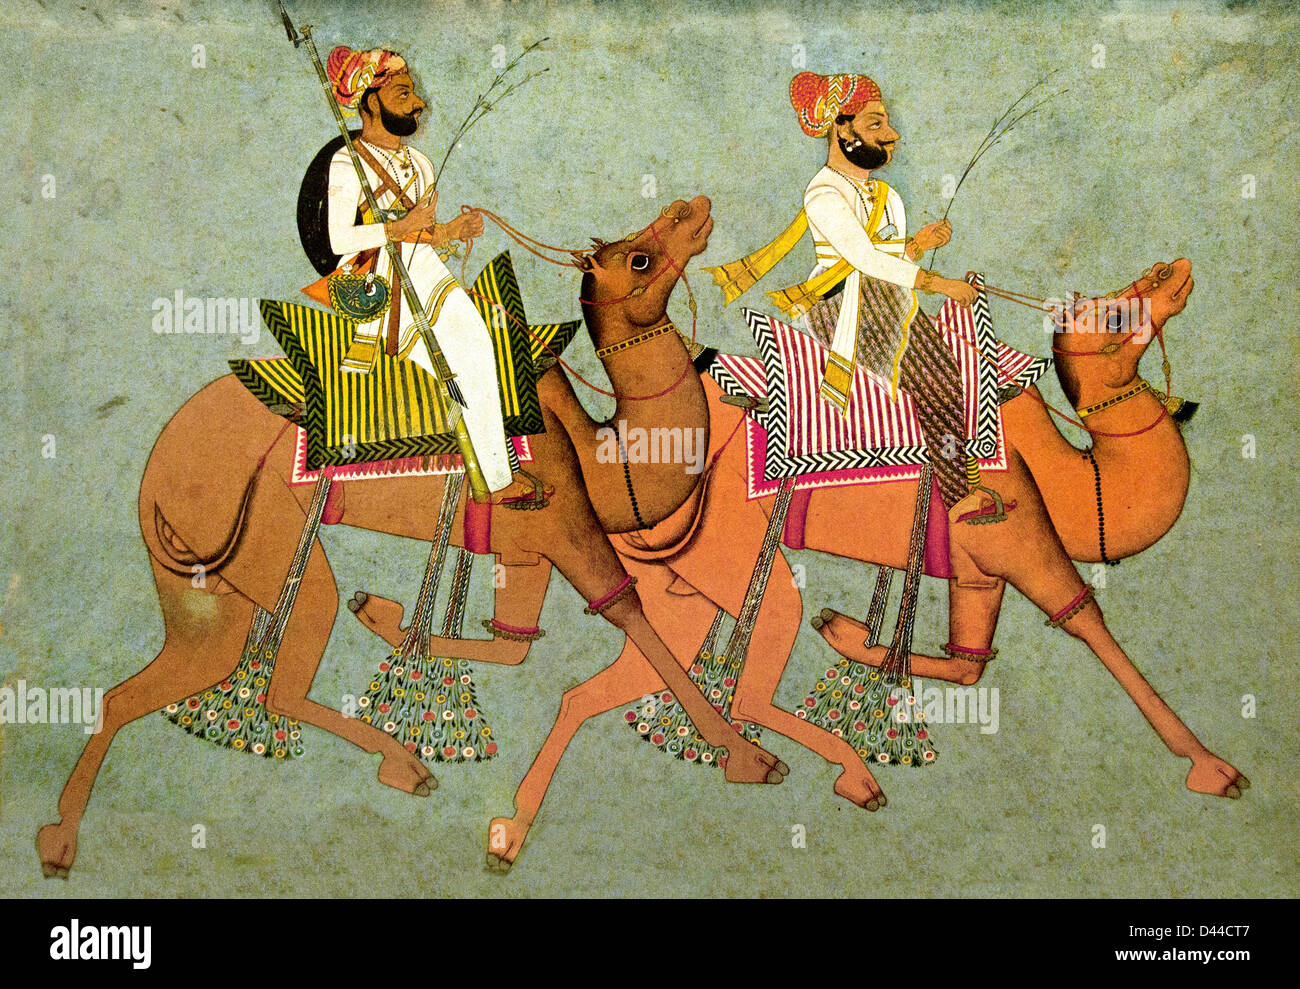 Camel riders 18 Secolo Mawar Rajasthan del Rajasthan in India Immagini Stock